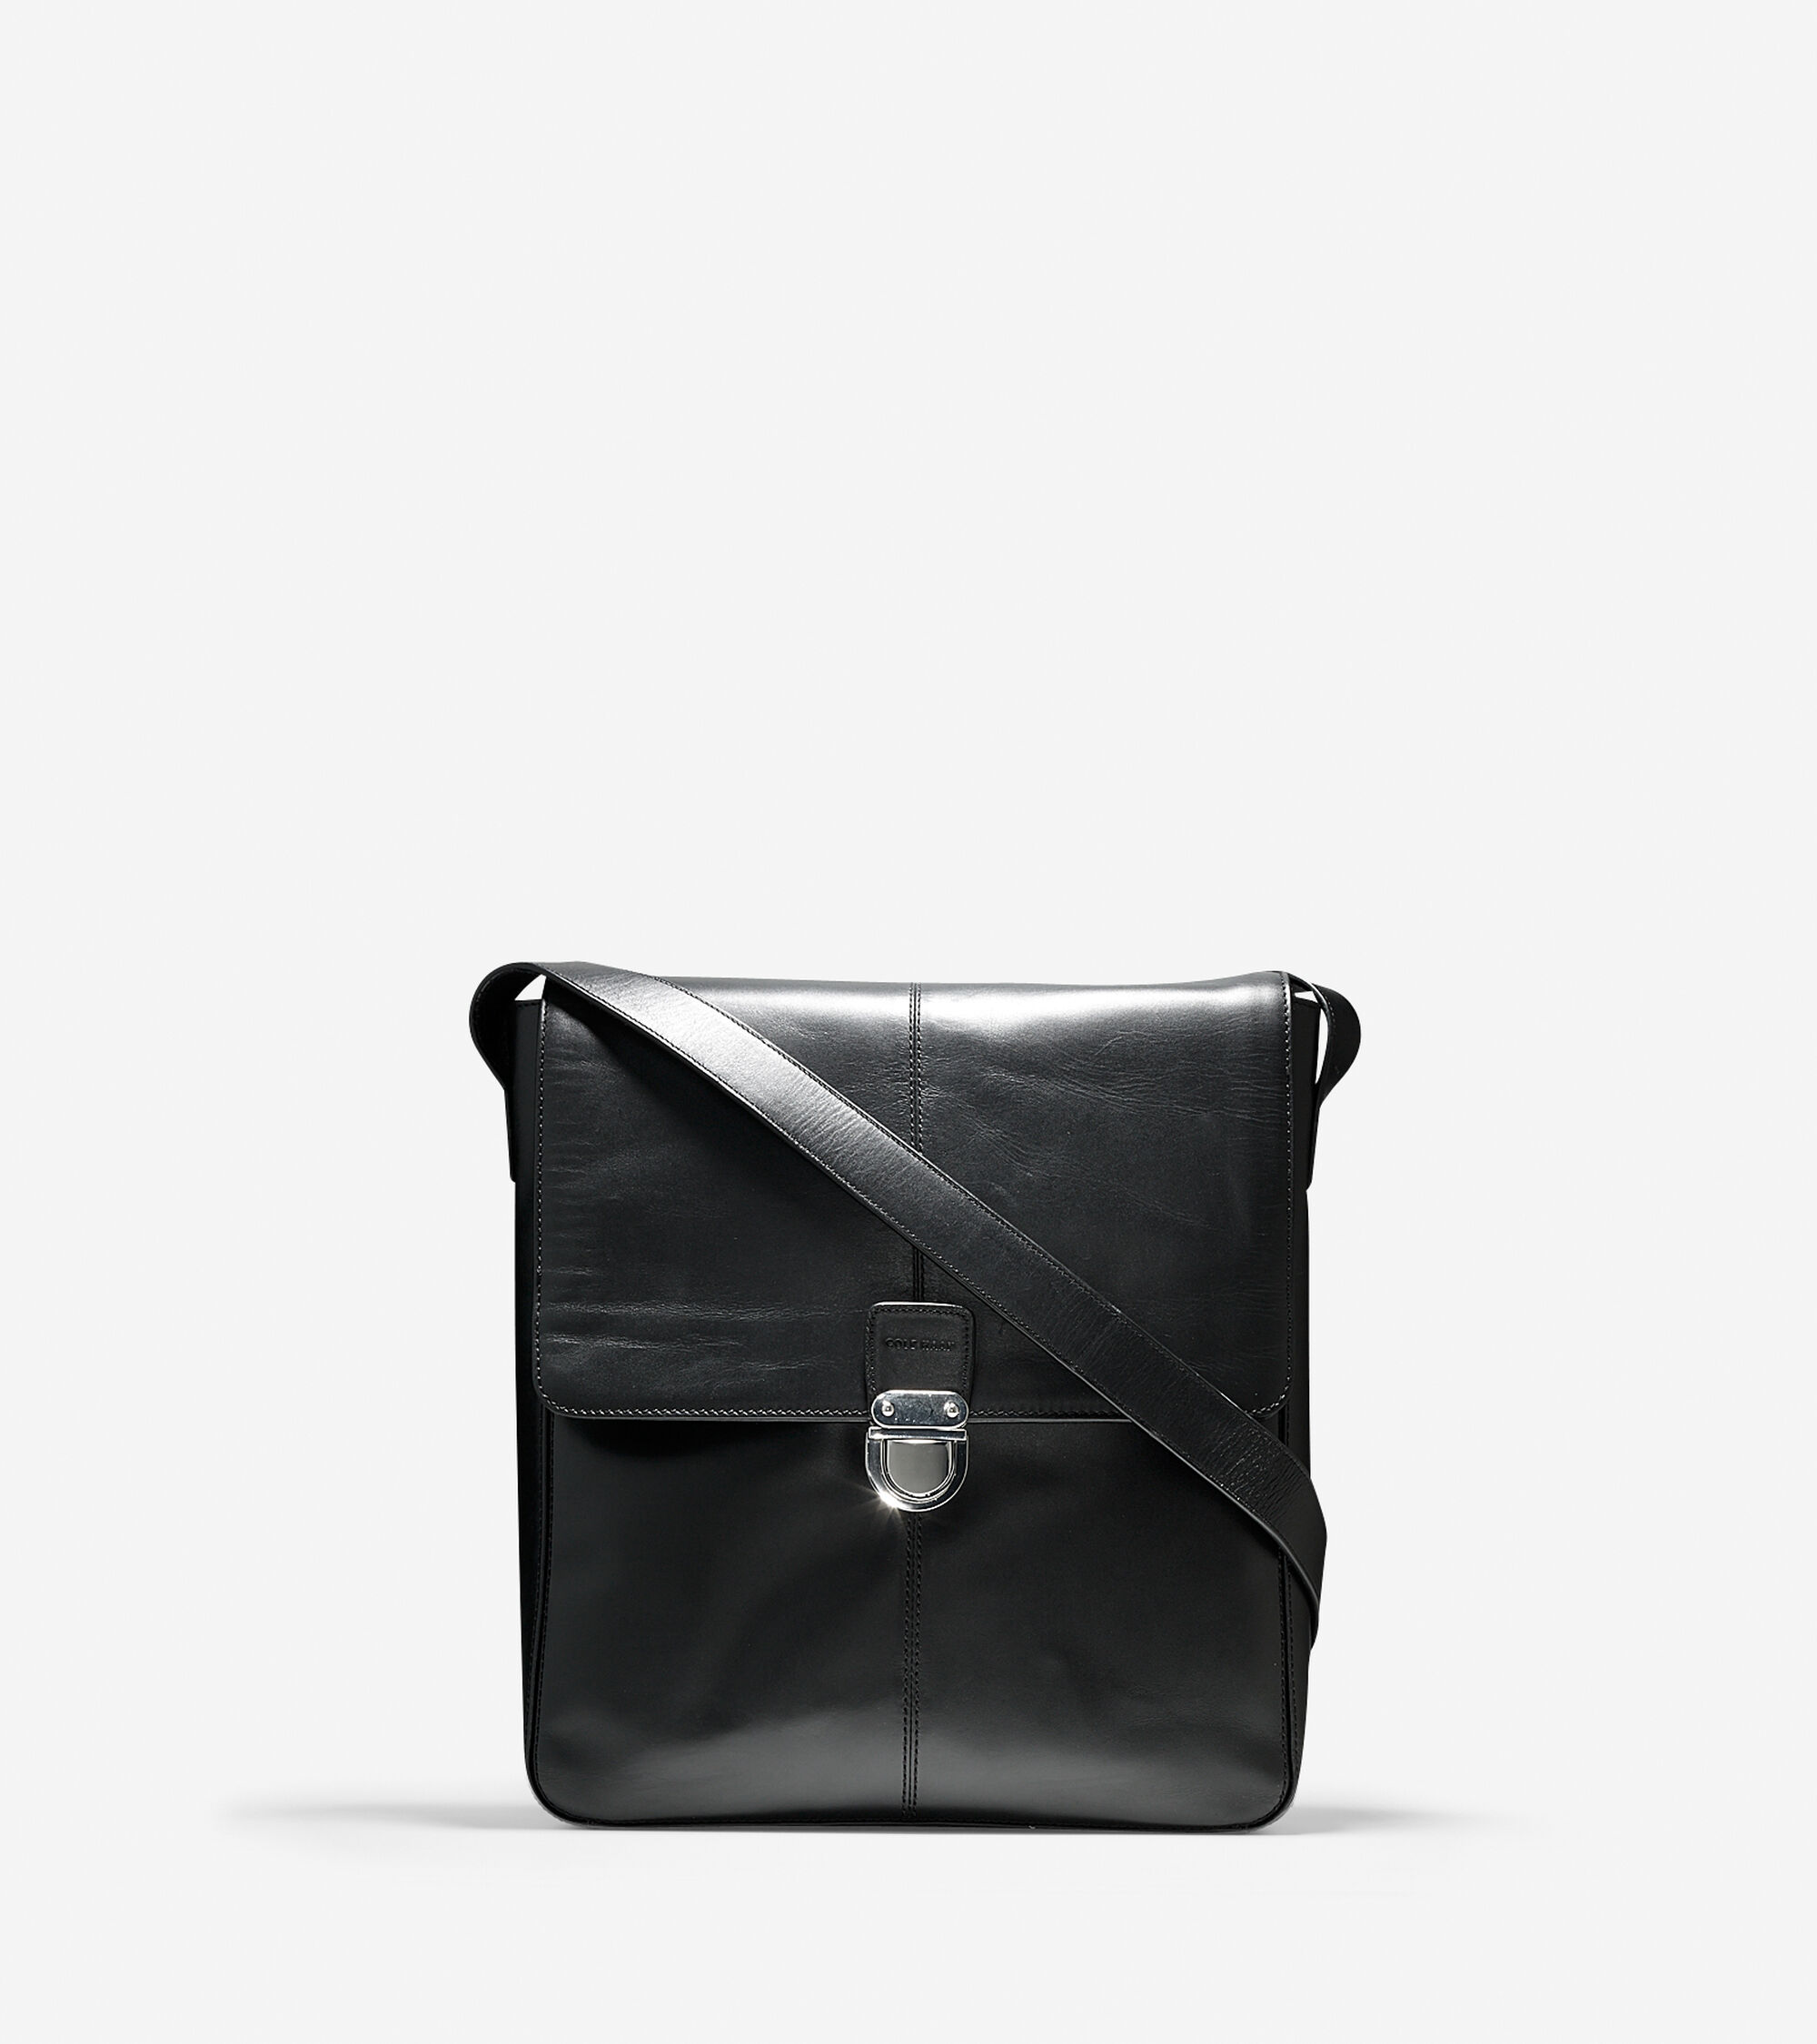 Briefs & Bags > Smooth Collection Reporter Bag